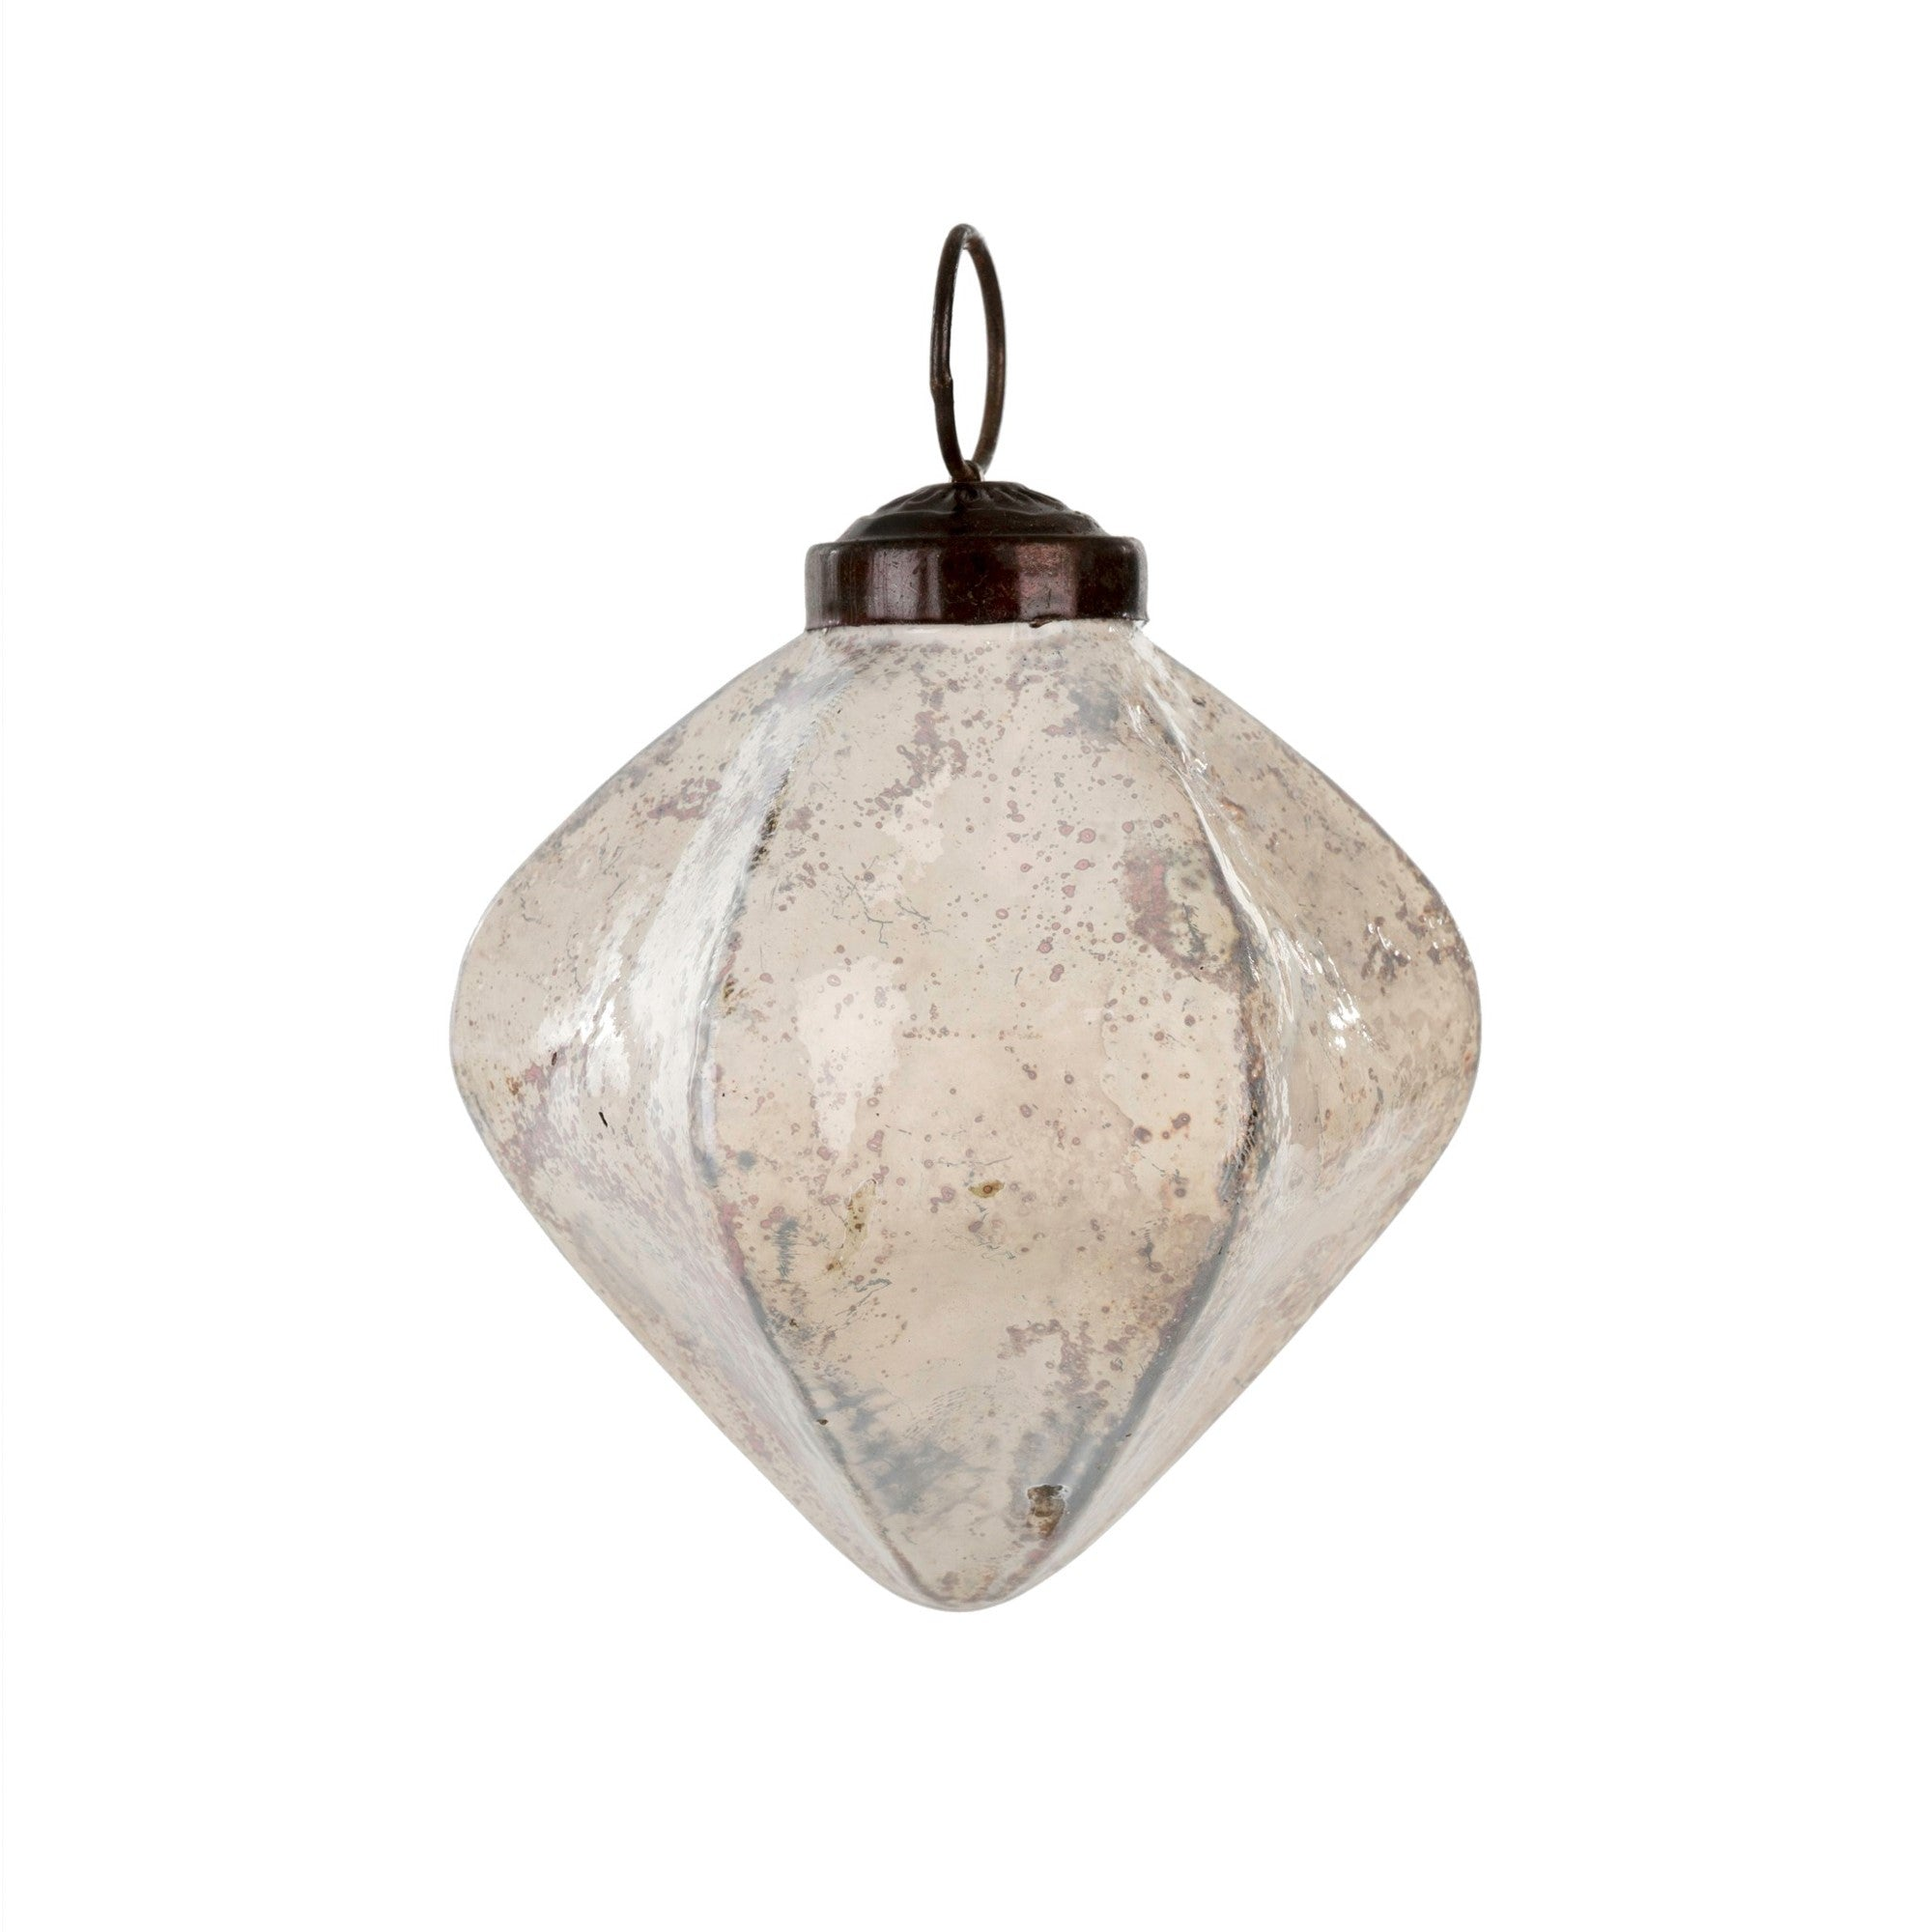 Medium Blush Crush Ornament